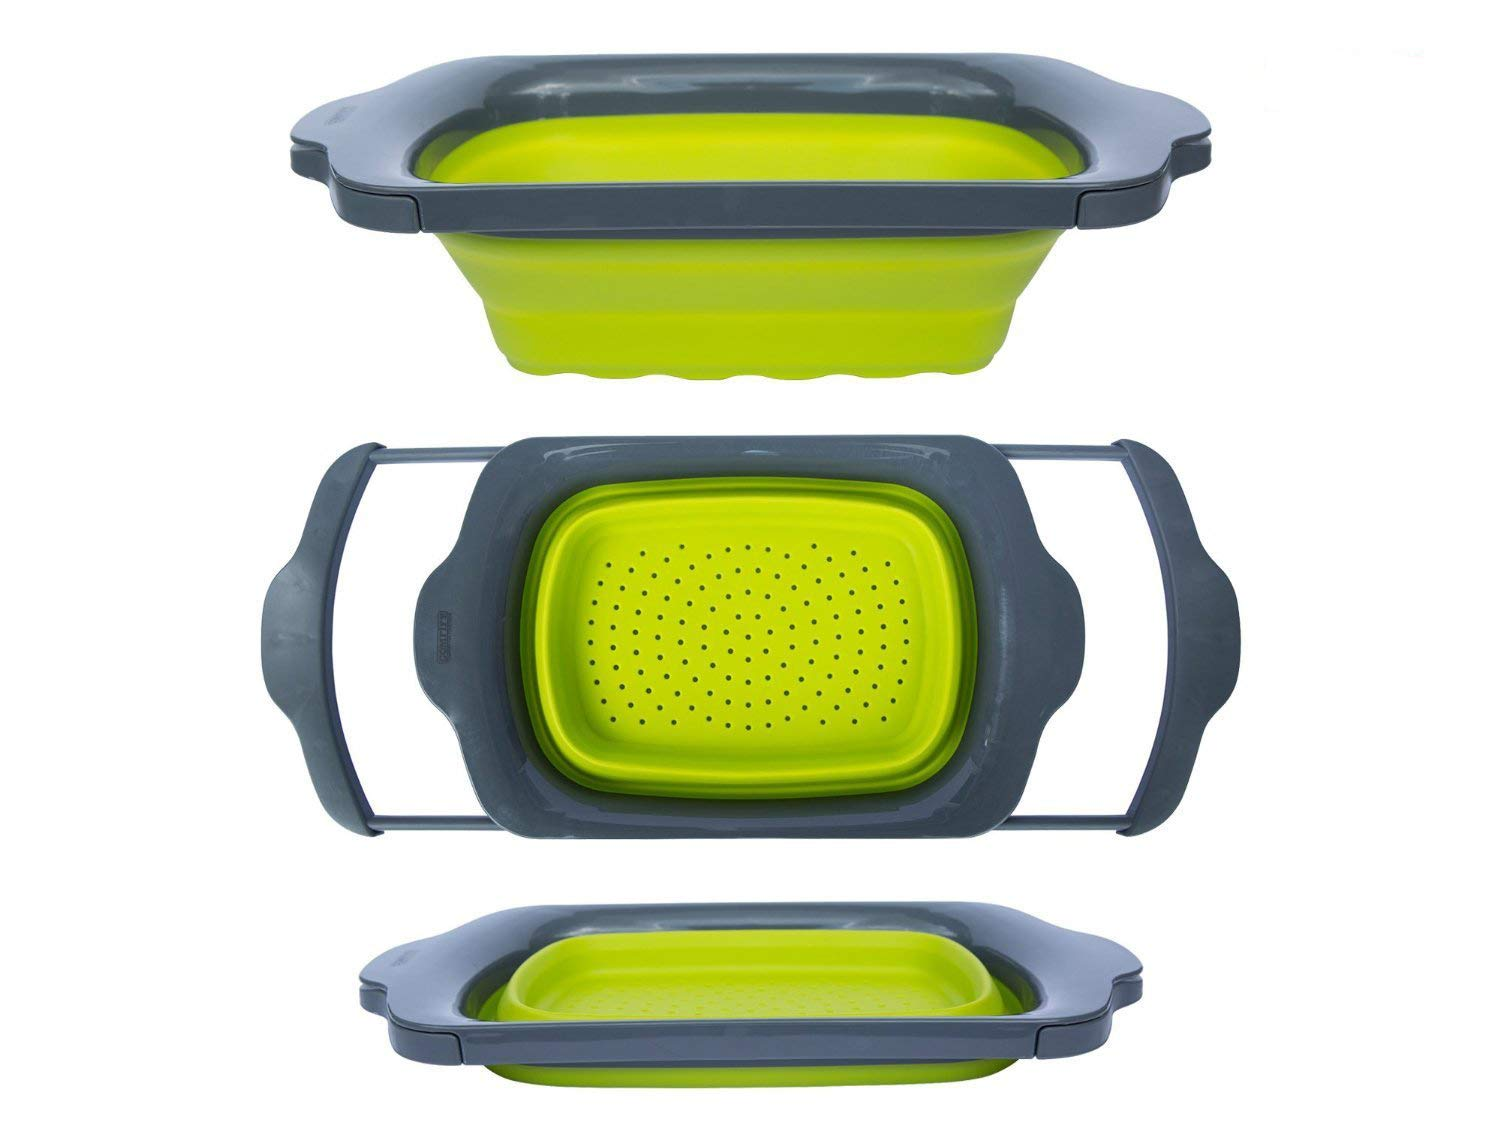 Collapsible Kitchen Colander - Over the Sink Kitchen Strainer By Comfify - 6-quart Capacity - Progressive Collapsible Colander with Handle - Green & Grey - Housewarming Gift Idea